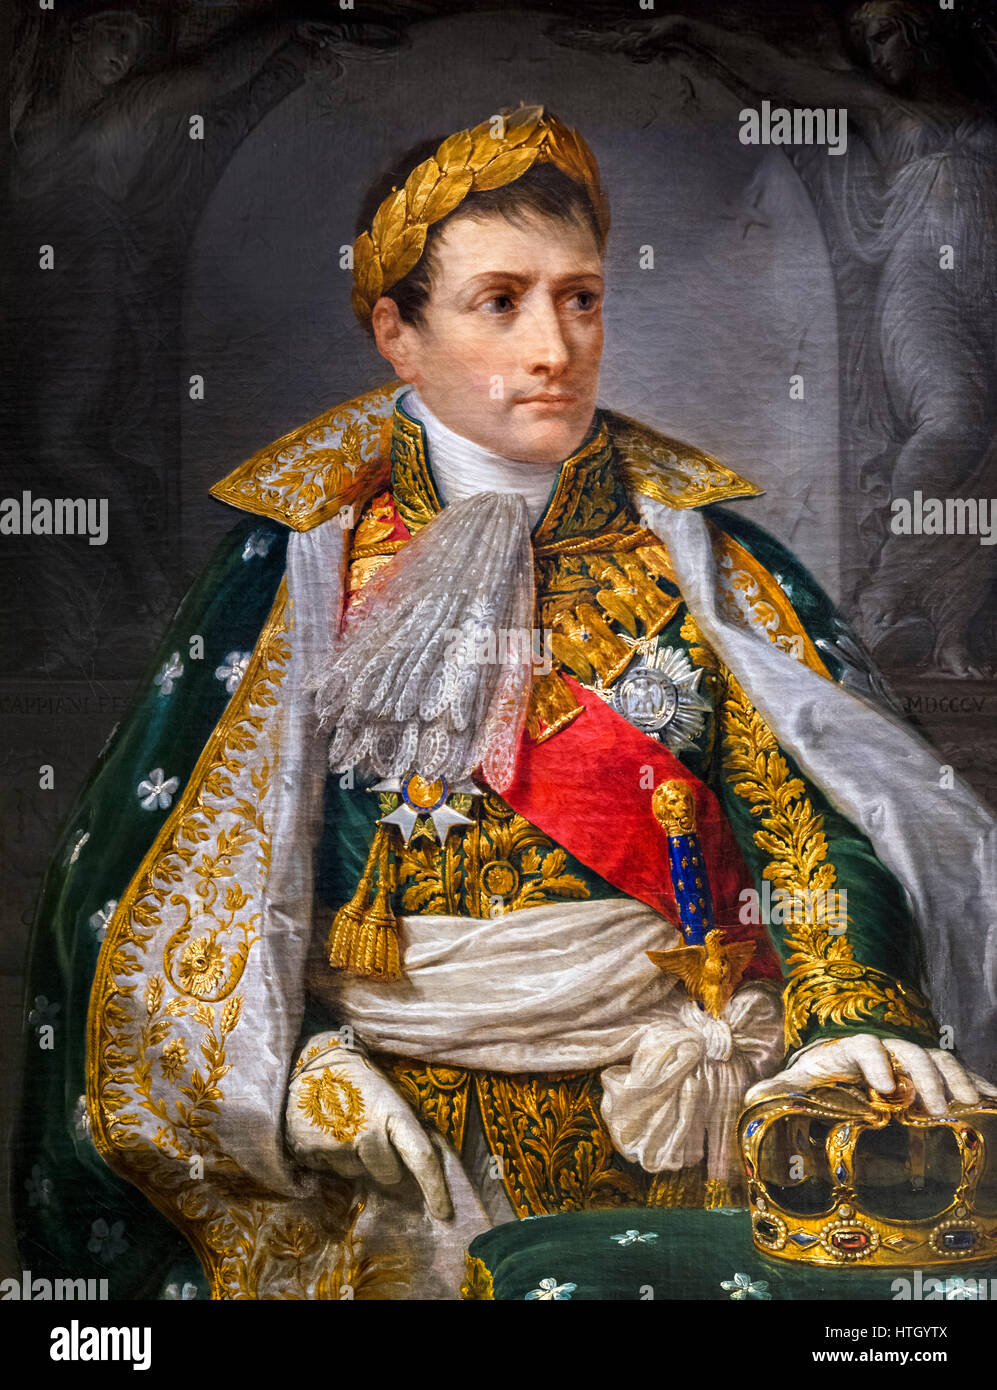 Napoleon Bonaparte as King of Italy by Andrea Appiani, oil on canvas, 1805 - Stock Image